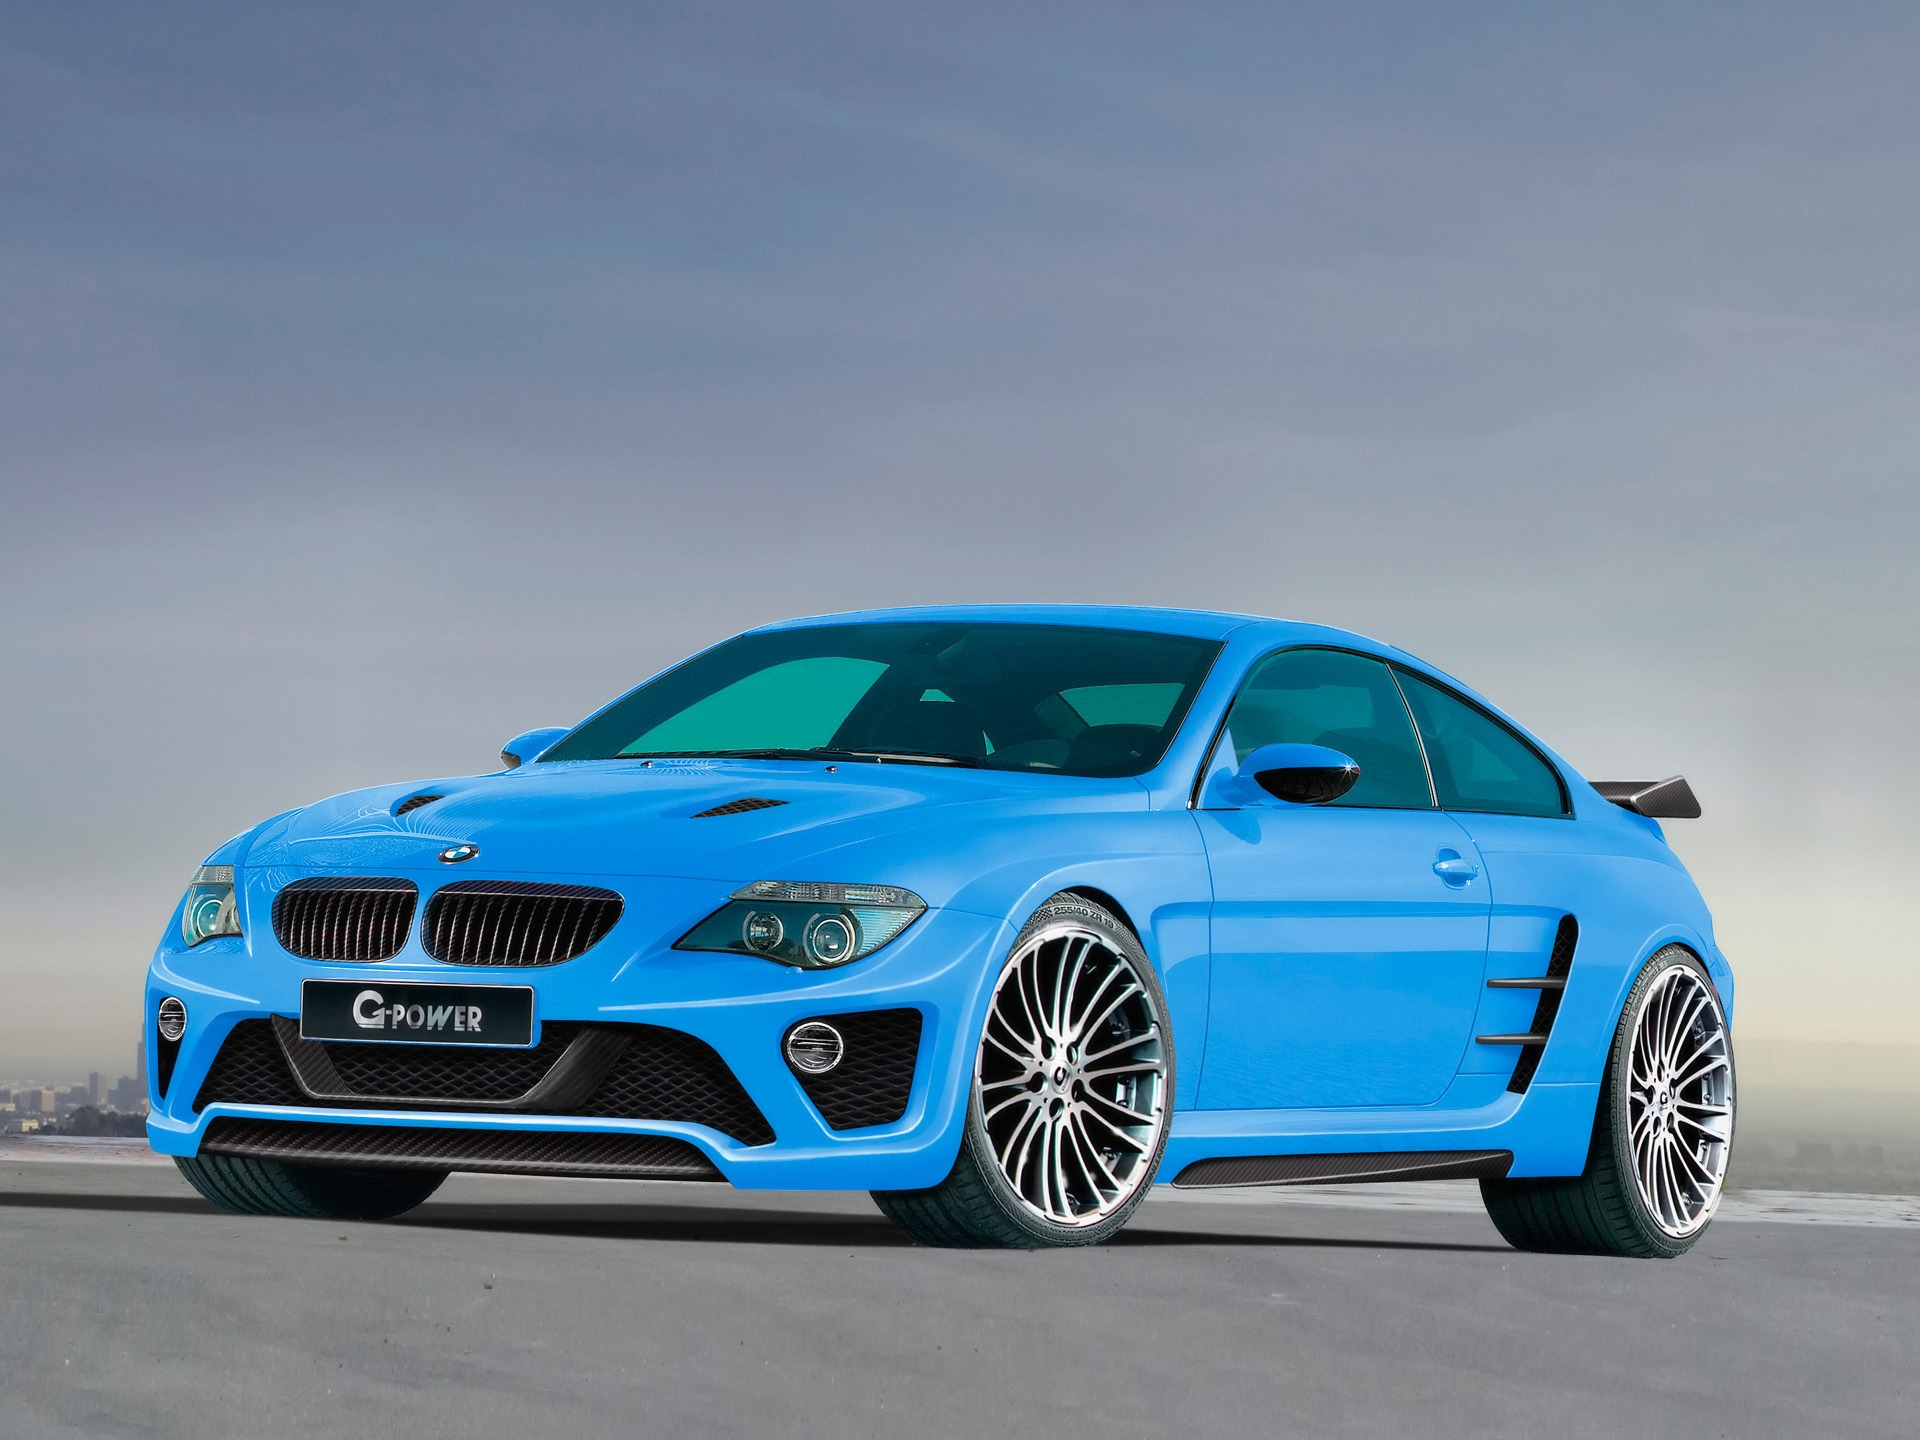 Bmw M6 Hurricane Cs Wallpaper Bmw Cars Wallpapers In Jpg Format For Free Download